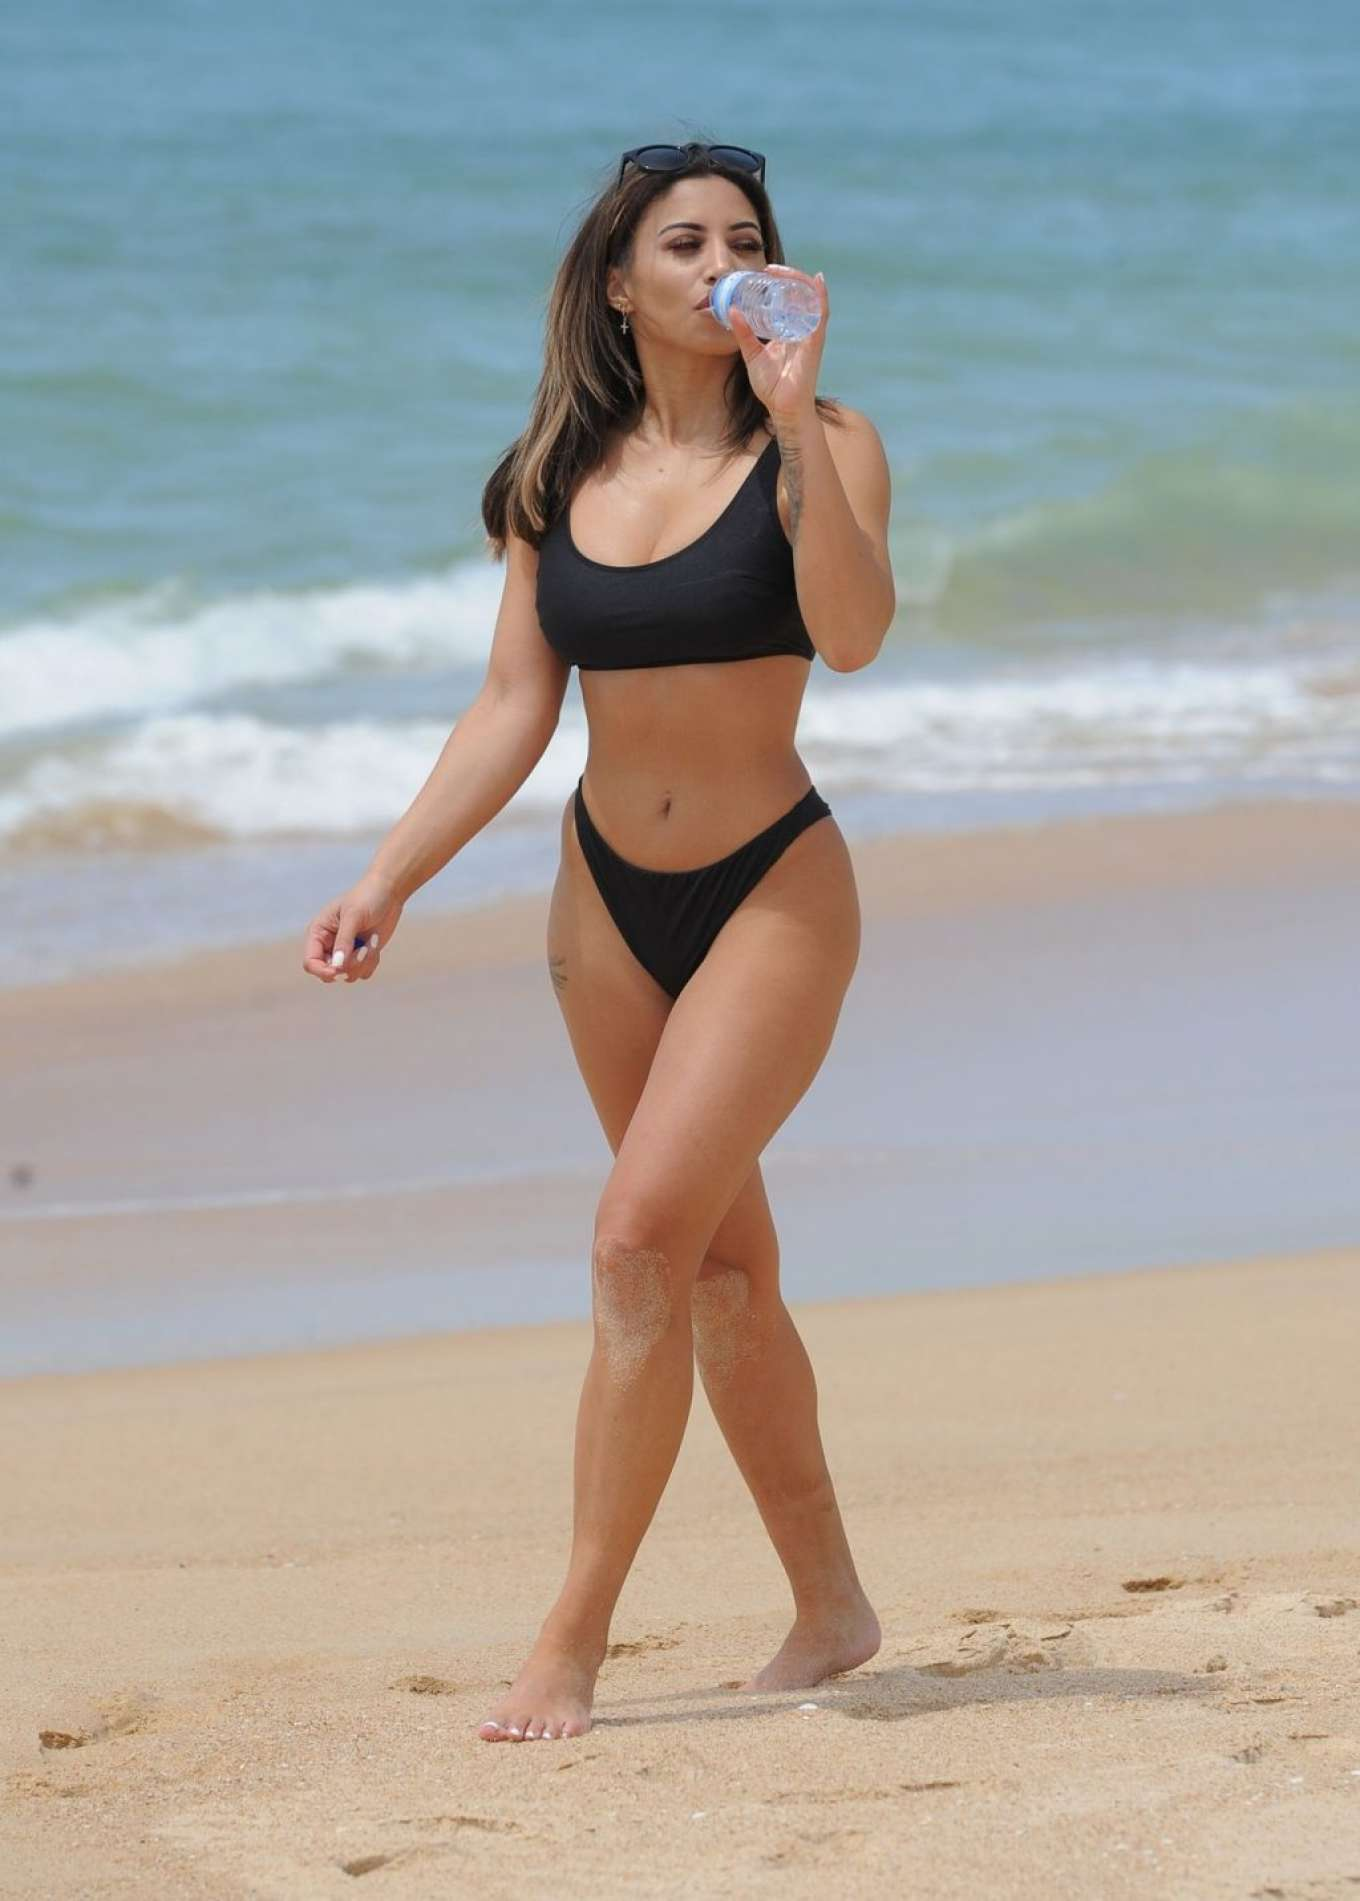 Kayleigh Morris in Black Bikini on the beach in Tenerife